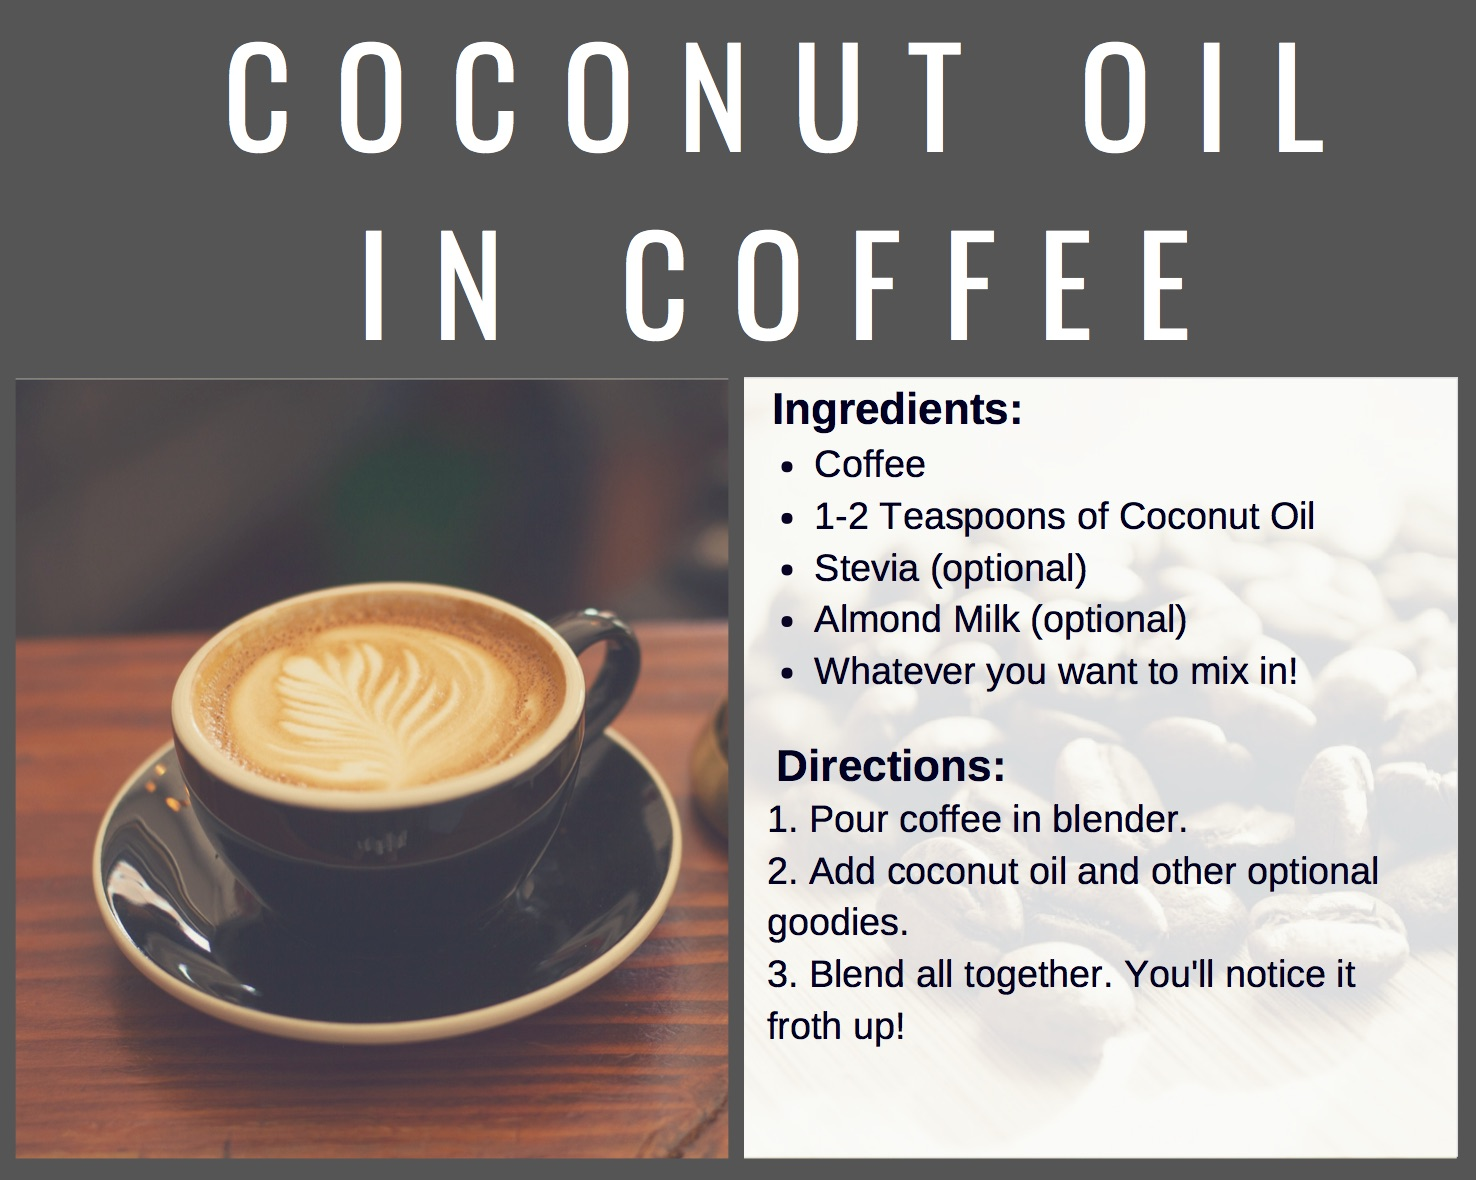 Coconut Oil in coffee can have a host of benefits!